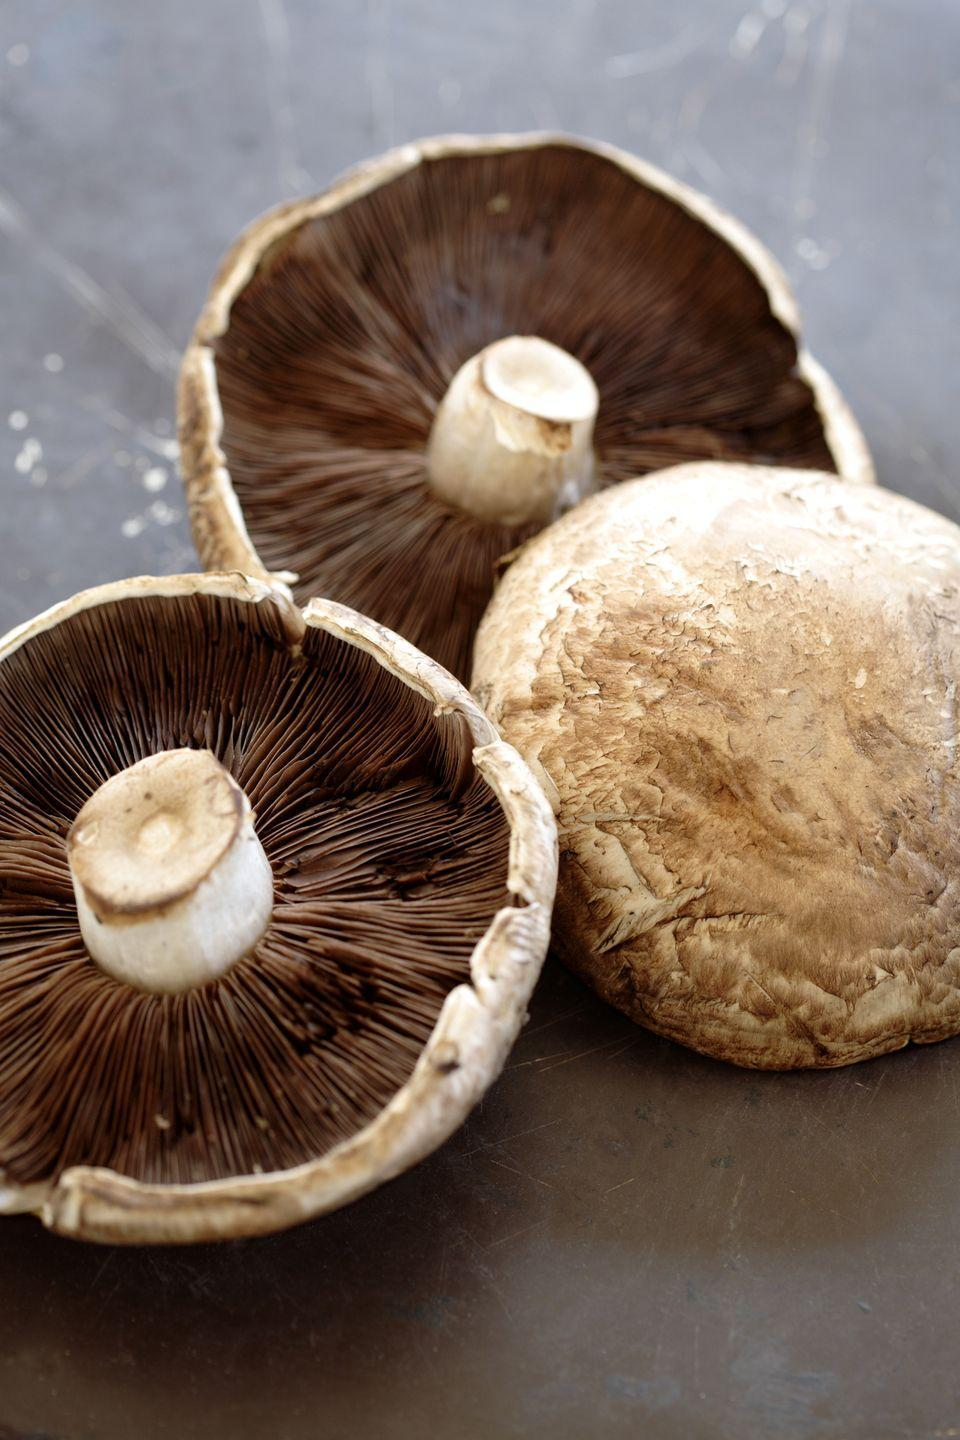 """<p>Skip the dough altogether and make personalized pizzas for each keto Super Bowl guest. You'll broil your mushroom caps to make a """"crust"""" and then load up on mozzarella, which is high in fat and protein but low on carbs.</p><p><a href=""""https://www.goodhousekeeping.com/food-recipes/a29773655/keto-portobello-mushroom-pizza-recipe/"""" rel=""""nofollow noopener"""" target=""""_blank"""" data-ylk=""""slk:Get the recipe for Keto Portobello Mushroom Pizza »"""" class=""""link rapid-noclick-resp""""><em><em><em><em>Get the recipe for Keto Portobello Mushroom Pizza <em><em>»</em></em></em></em></em></em></a></p>"""